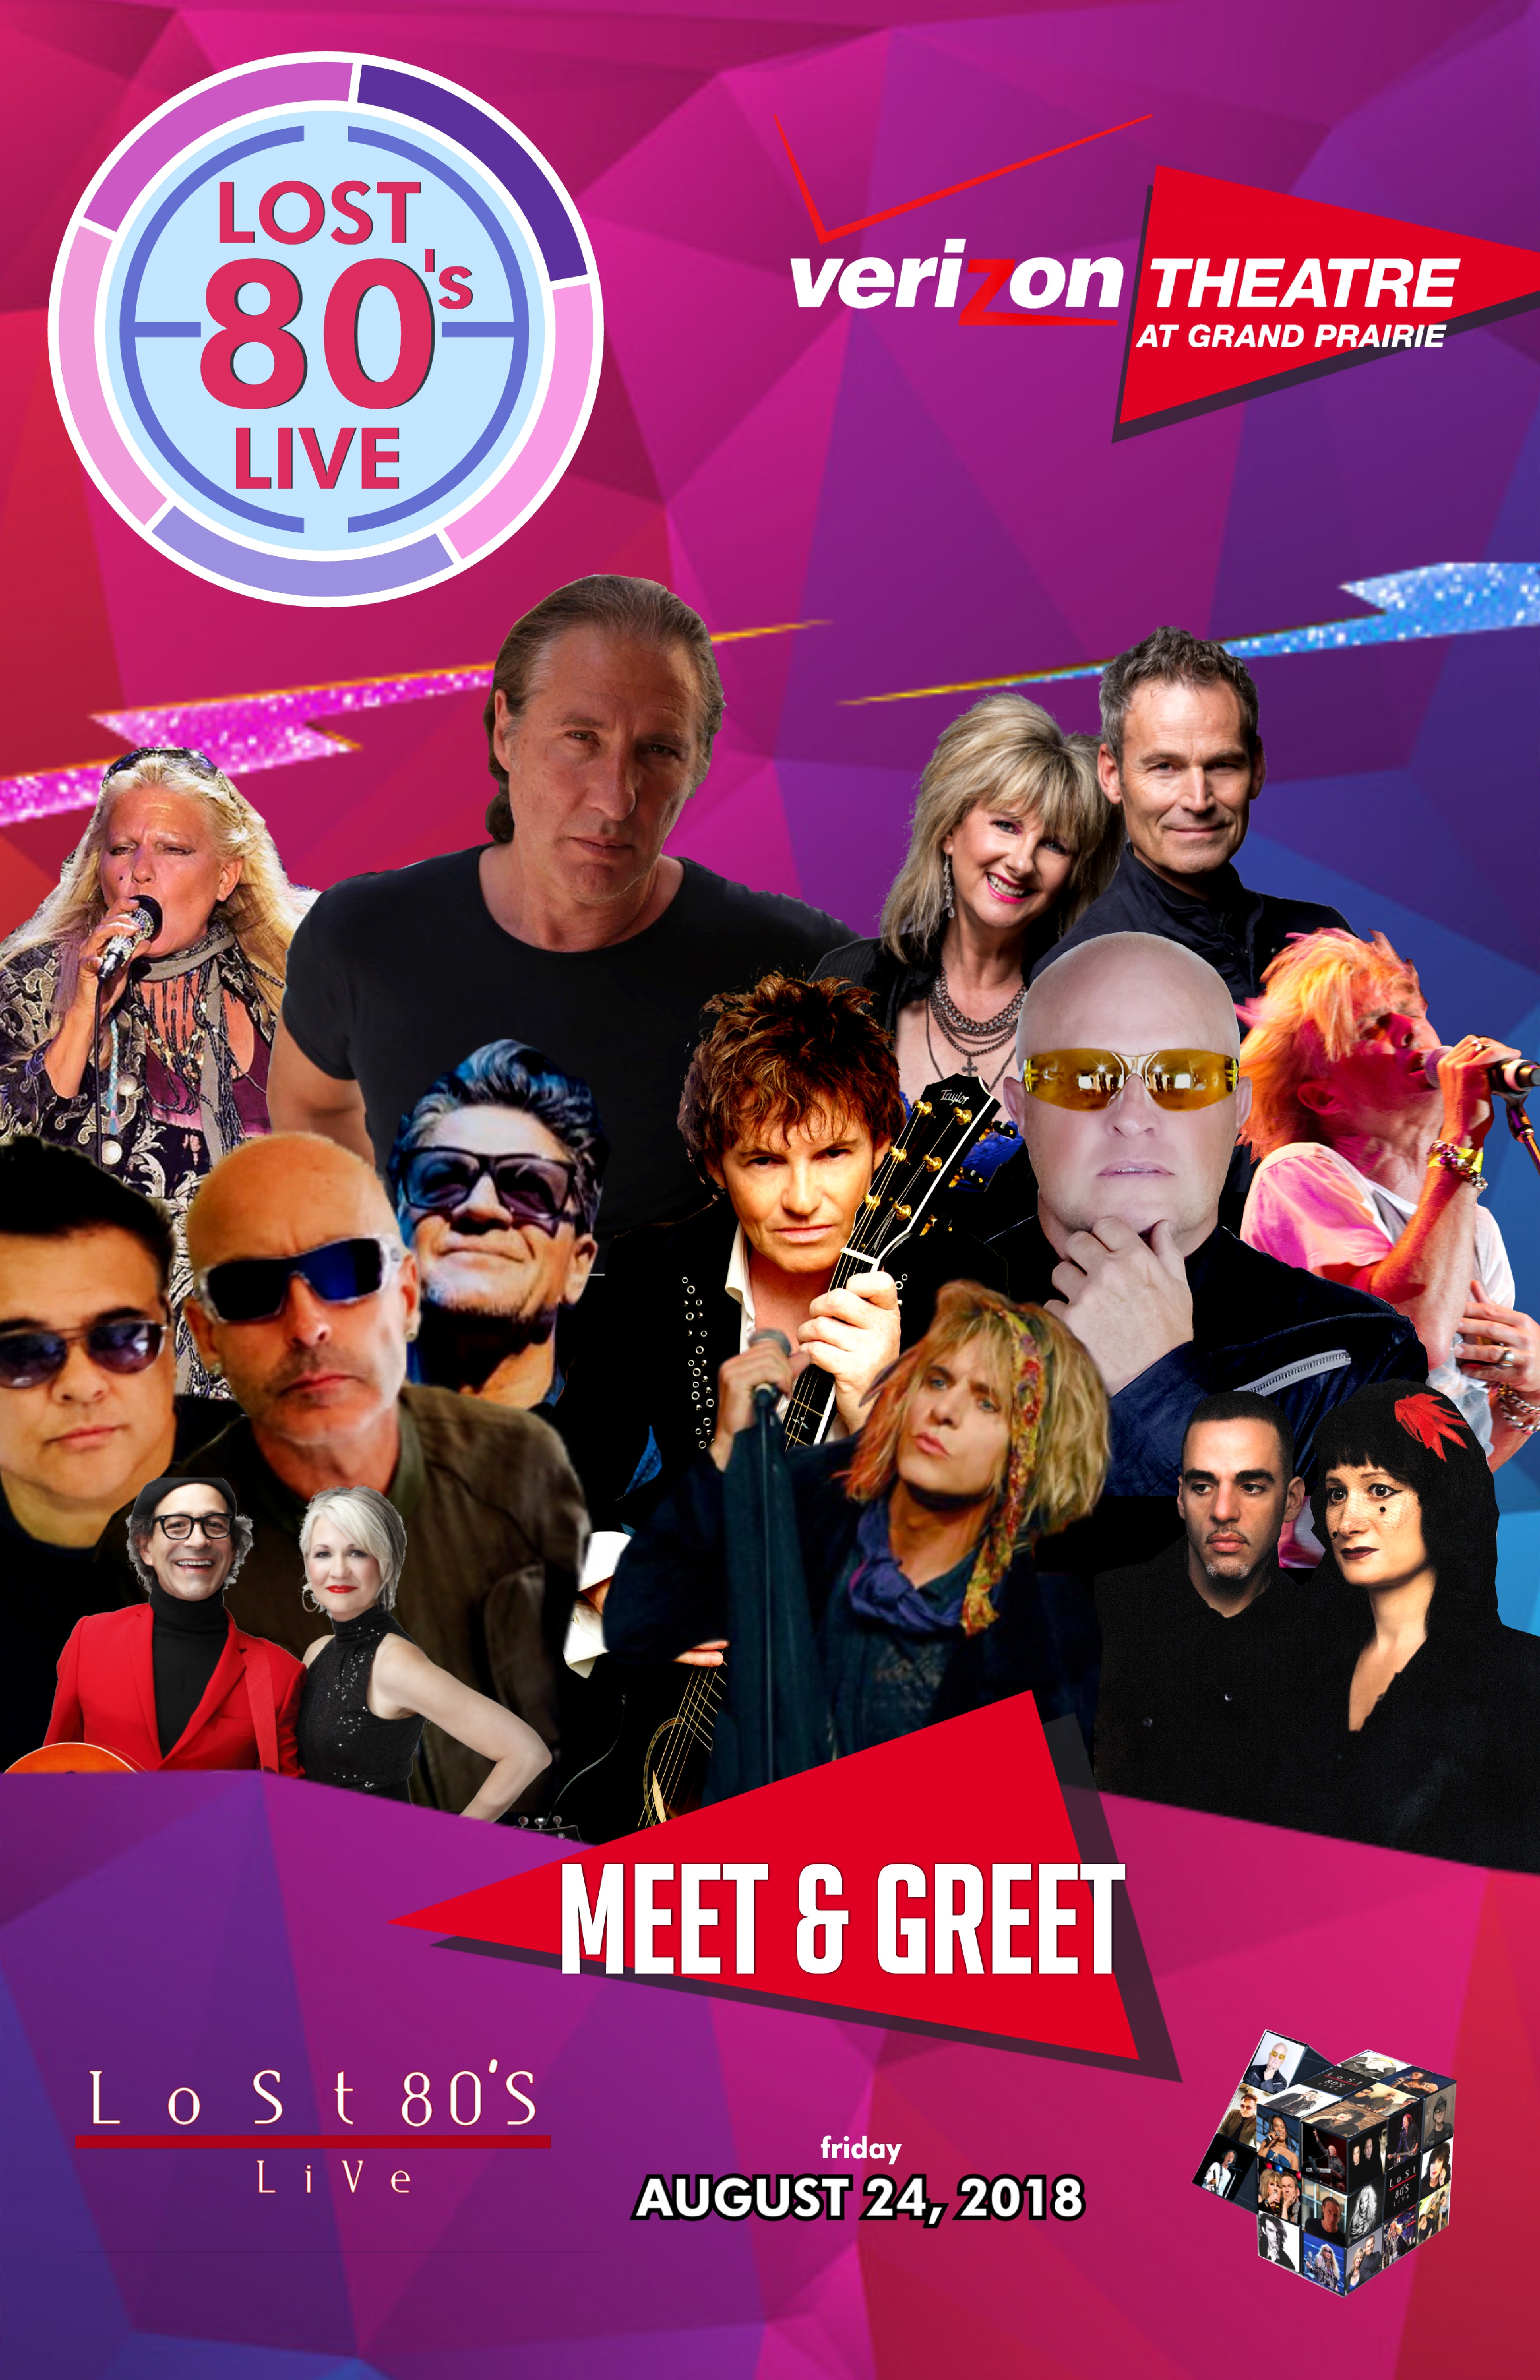 Meet and greet lost 80s live verizon theatre at grand prairie tx meet and greet lost 80s live verizon theatre at grand prairie tx for the ultimate 80s fan experience aug 24th for ticket holders only m4hsunfo Image collections